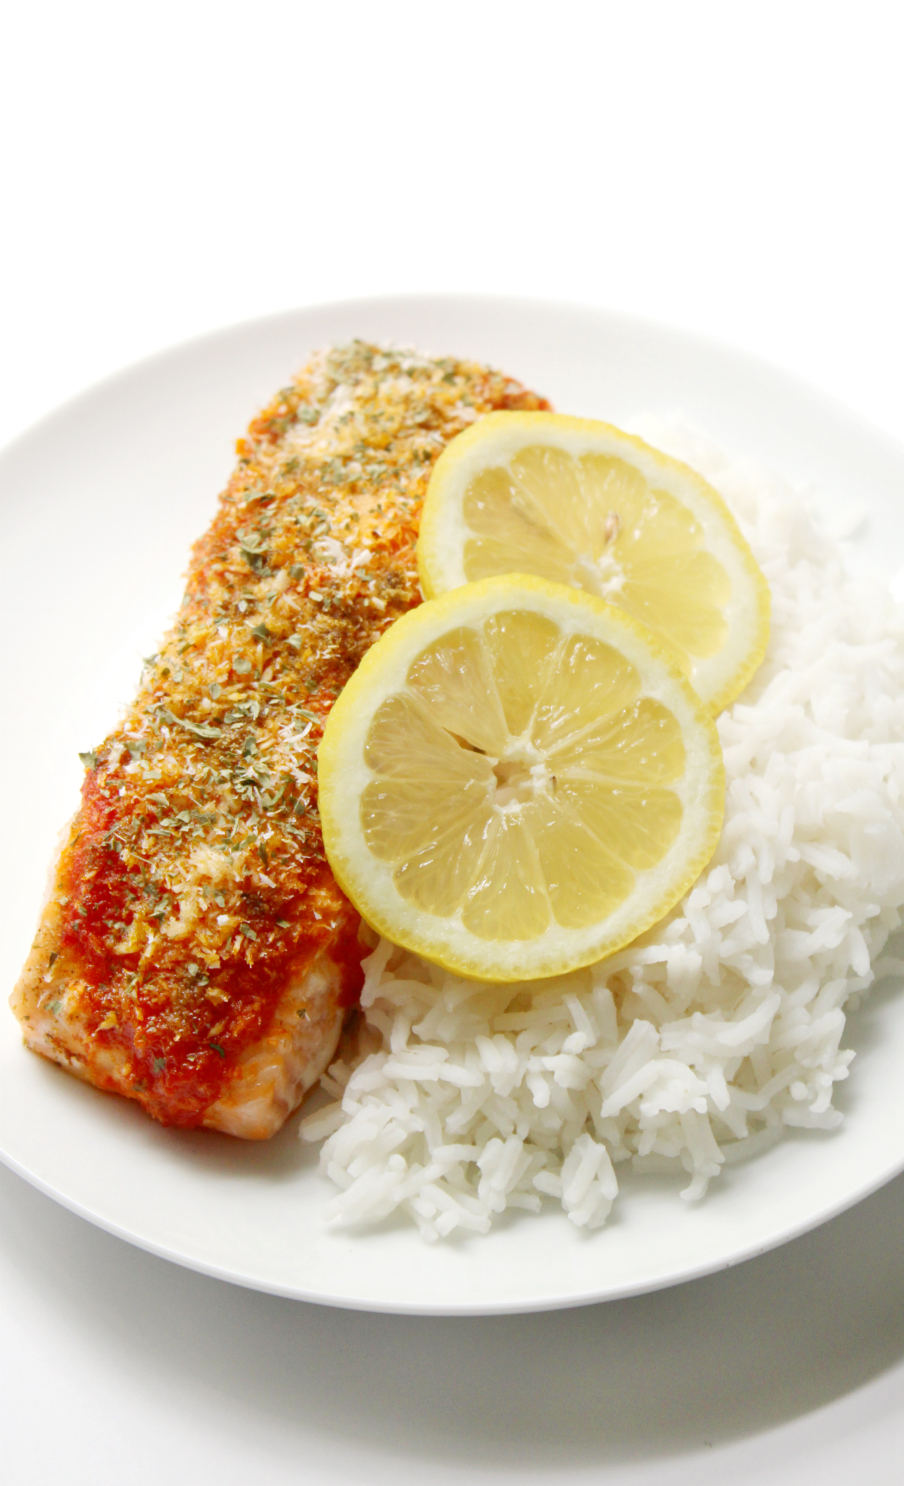 Harissa Salmon with Shredded Coconut | Strength and Sunshine @RebeccaGF666 A delicious new way to flavor up your favorite fish! Harissa Salmon with Shredded Coconut is a healthy new recipe to add to the dinner plate. Gluten-Free, paleo, and whole 30 friendly, so you'll never be bored!